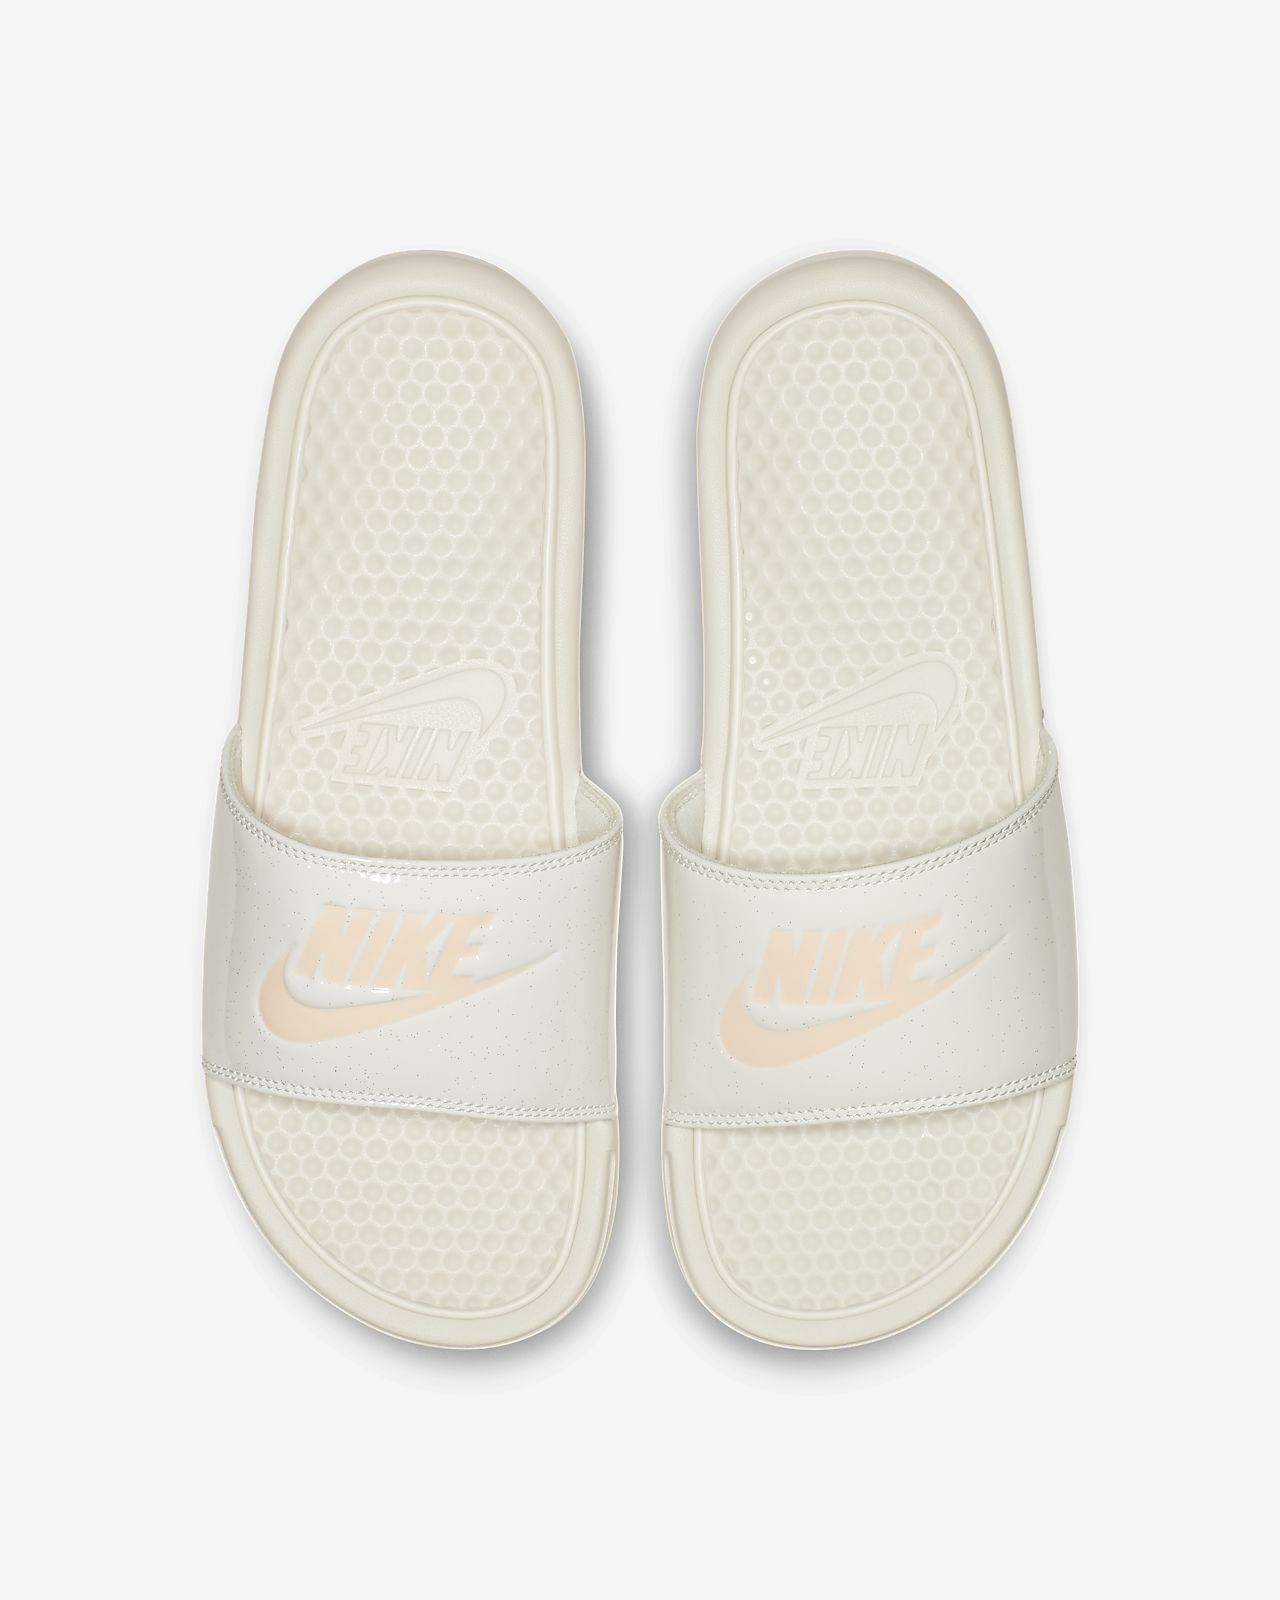 Nike Benassi JDI Sheen Women's Slide